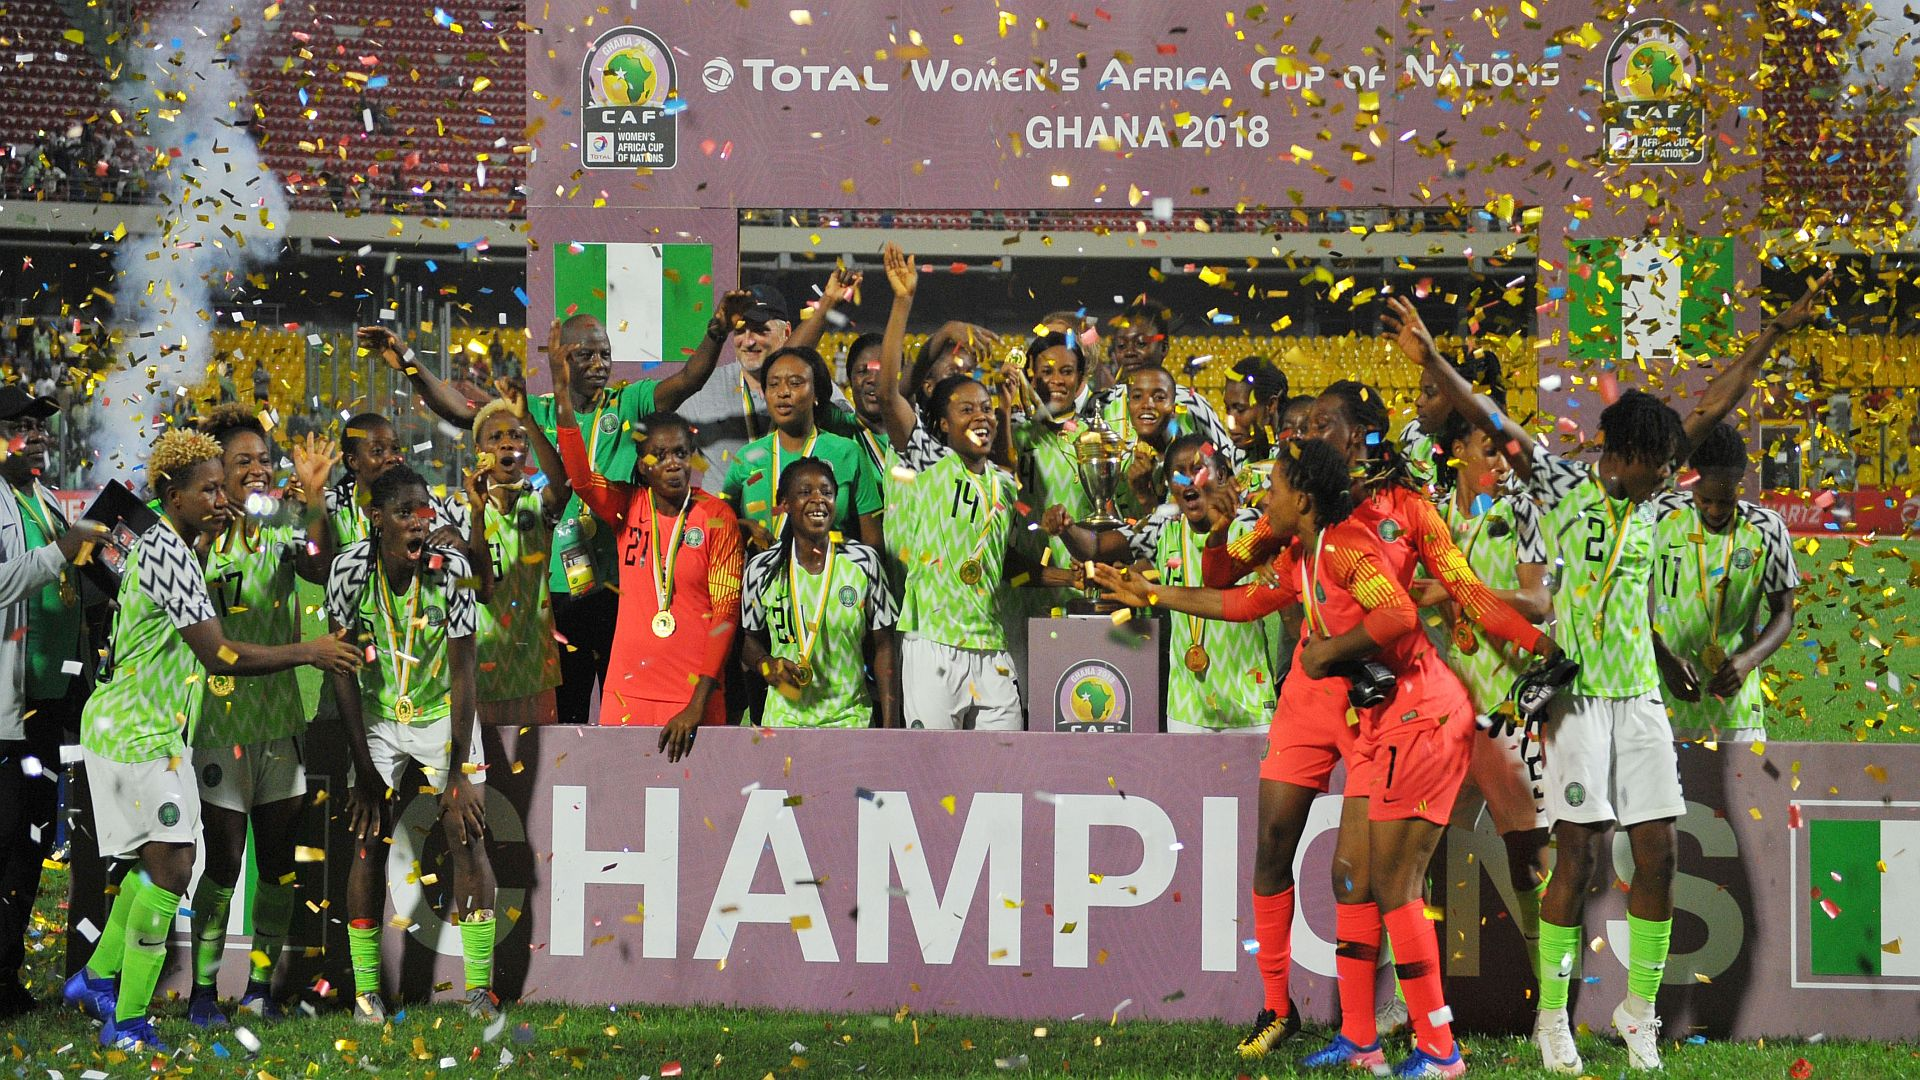 Morocco to host 2022 Women's Africa Cup of Nations